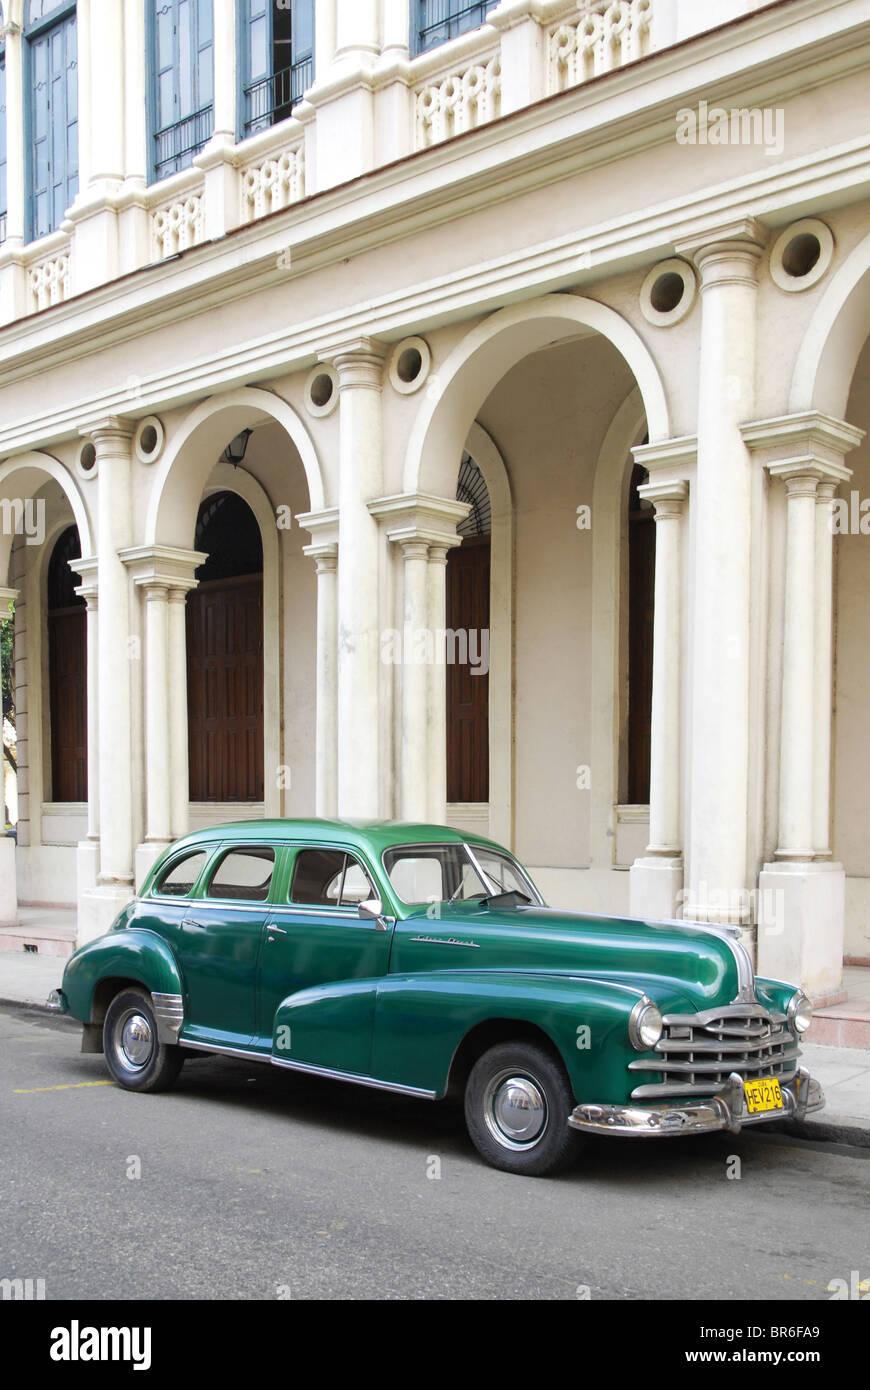 Pontiac Silver Streak Automobile Stock Photos 1941 Streamliner A Green Classic Car Parked In Havana Cuba Image